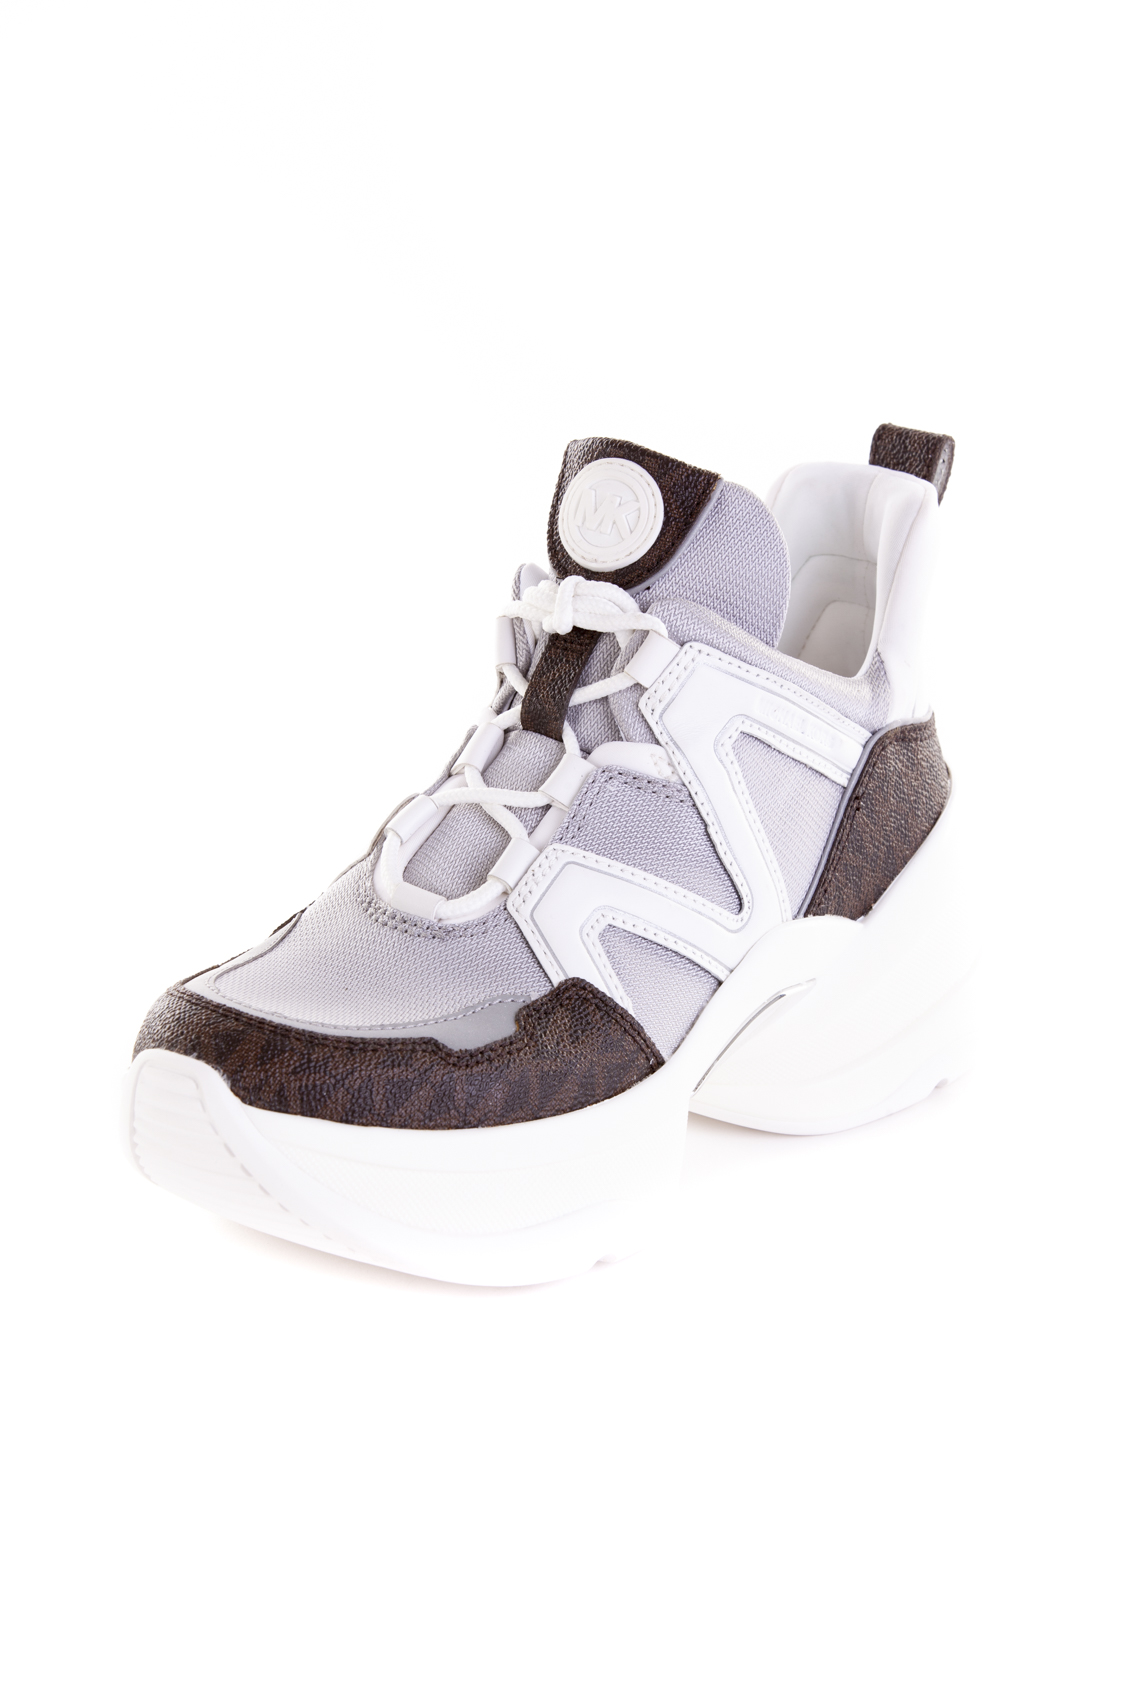 MICHAEL KORS OLYMPIA TRAINER silver white